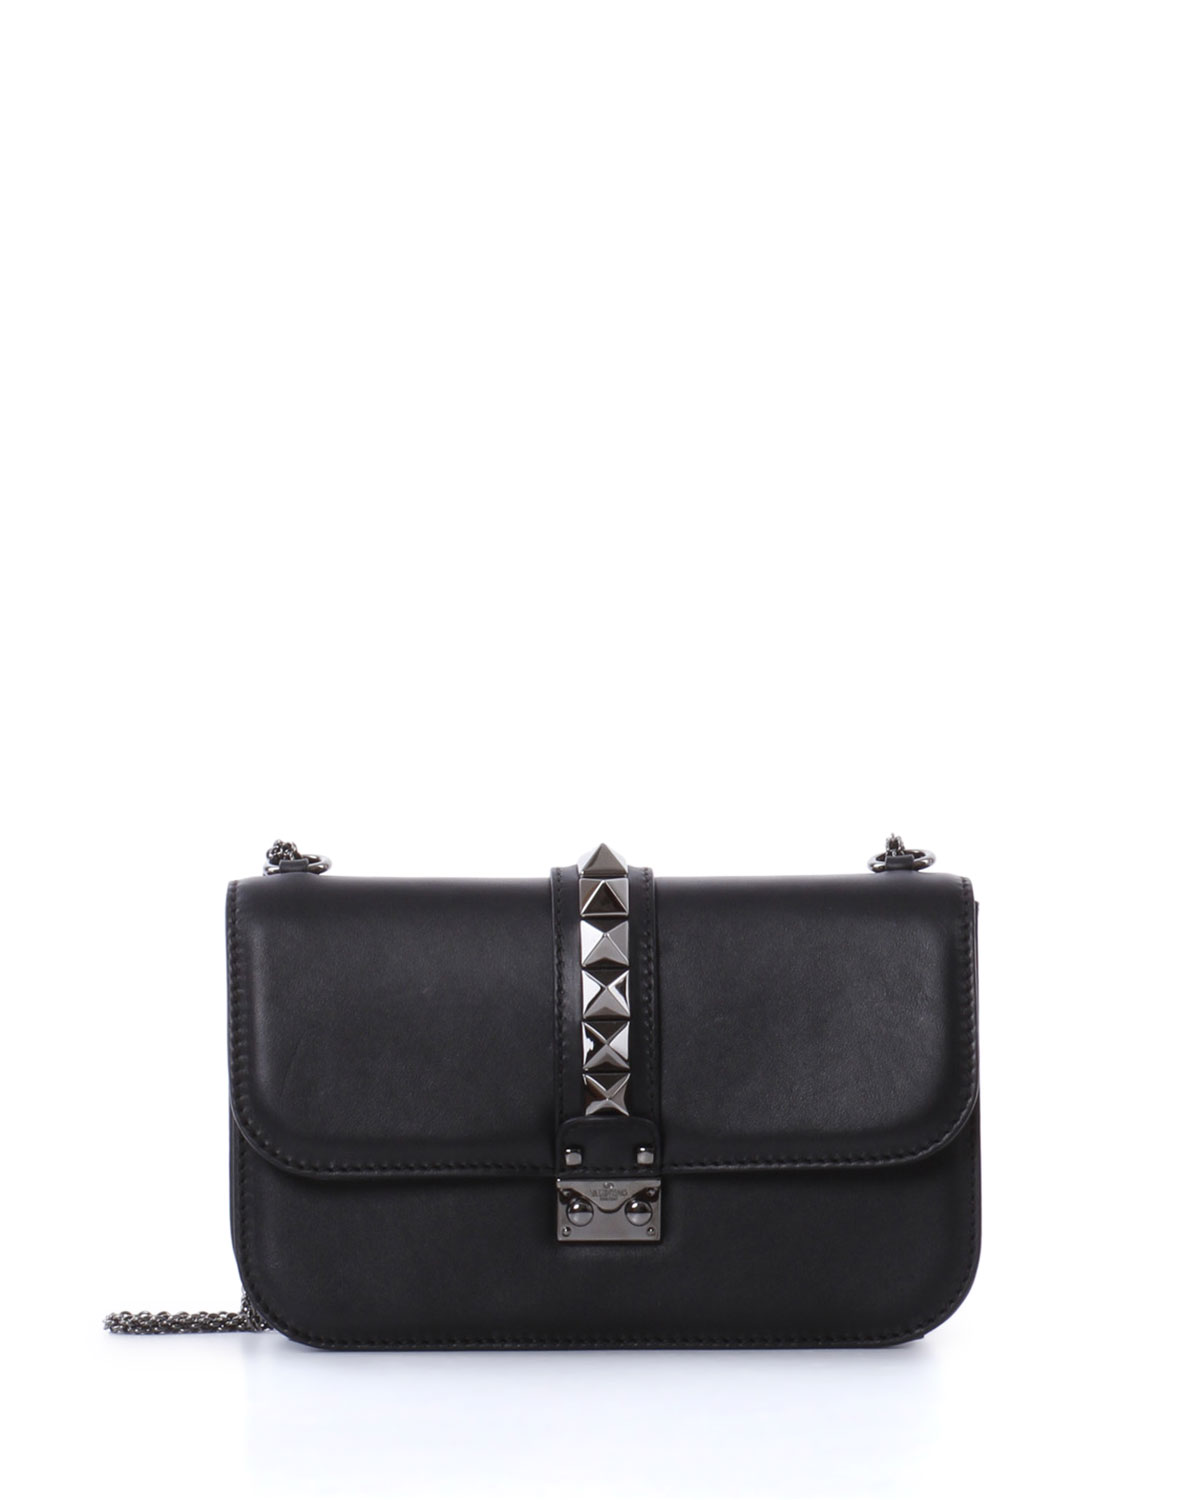 Medium Lock Shoulder Bag, Black - Valentino